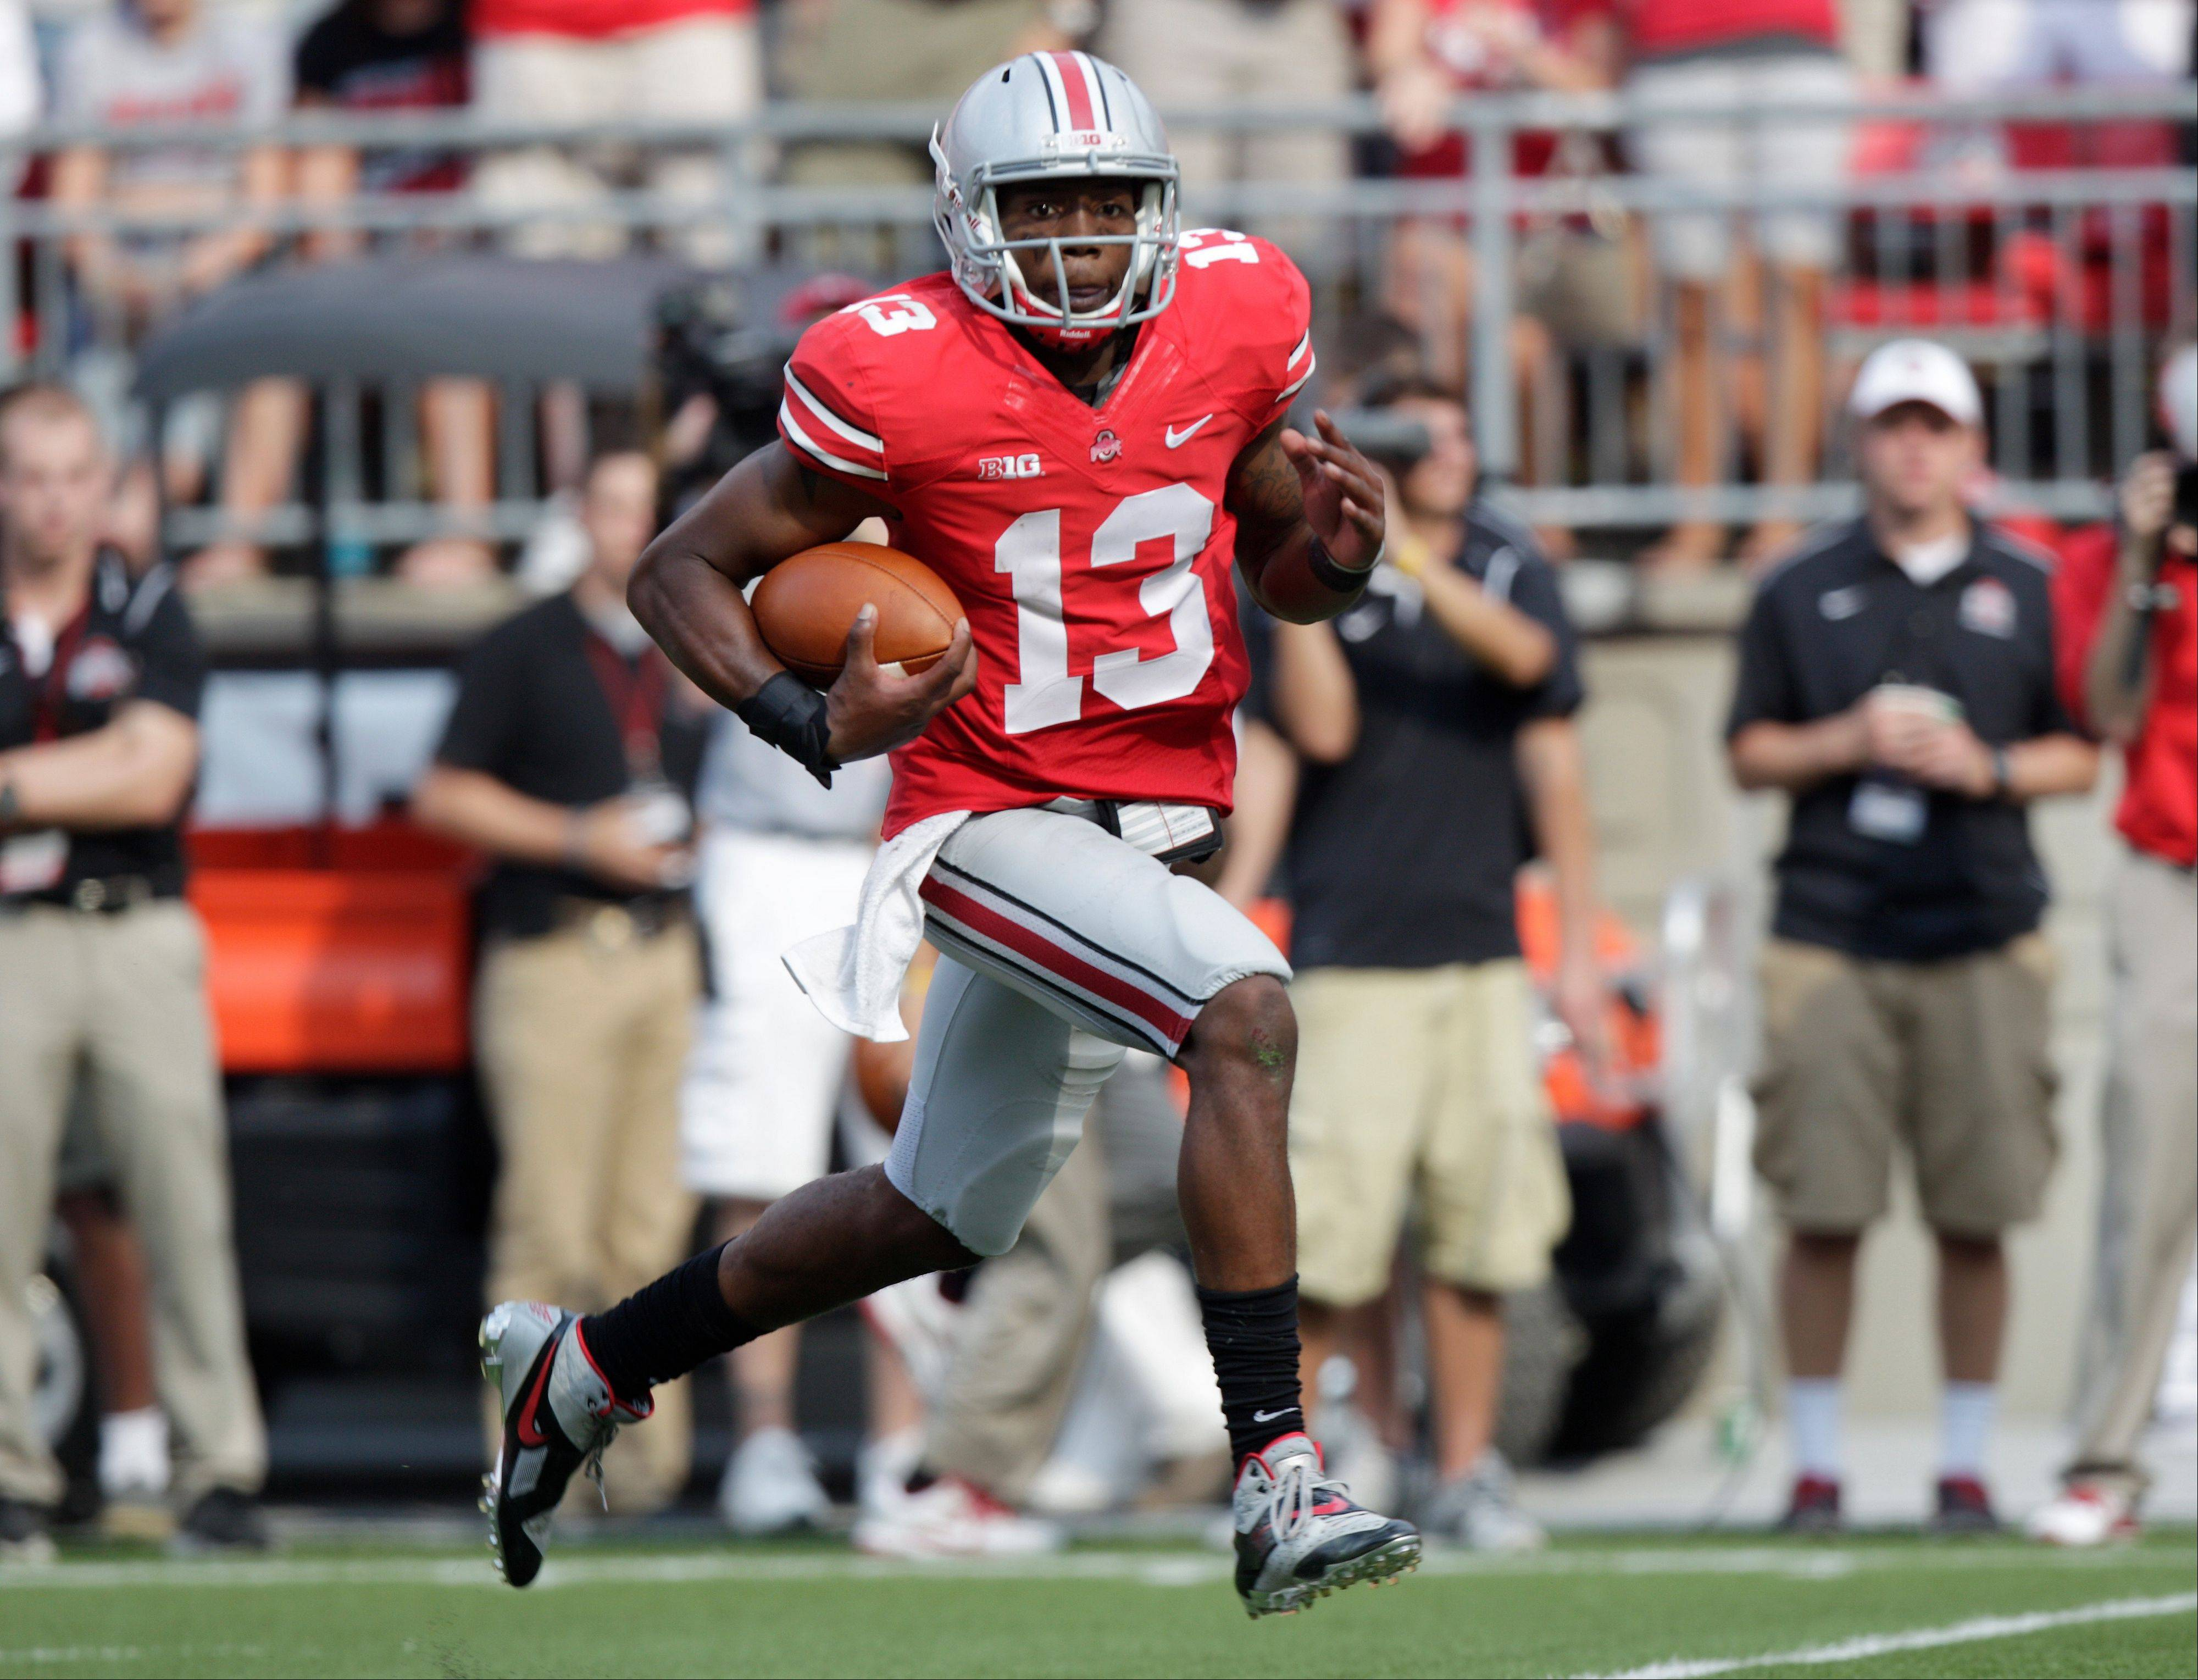 Ohio State backup quarterback Kenny Guiton breaks away for a touchdown run against San Diego State during the second quarter Saturday in Columbus, Ohio.